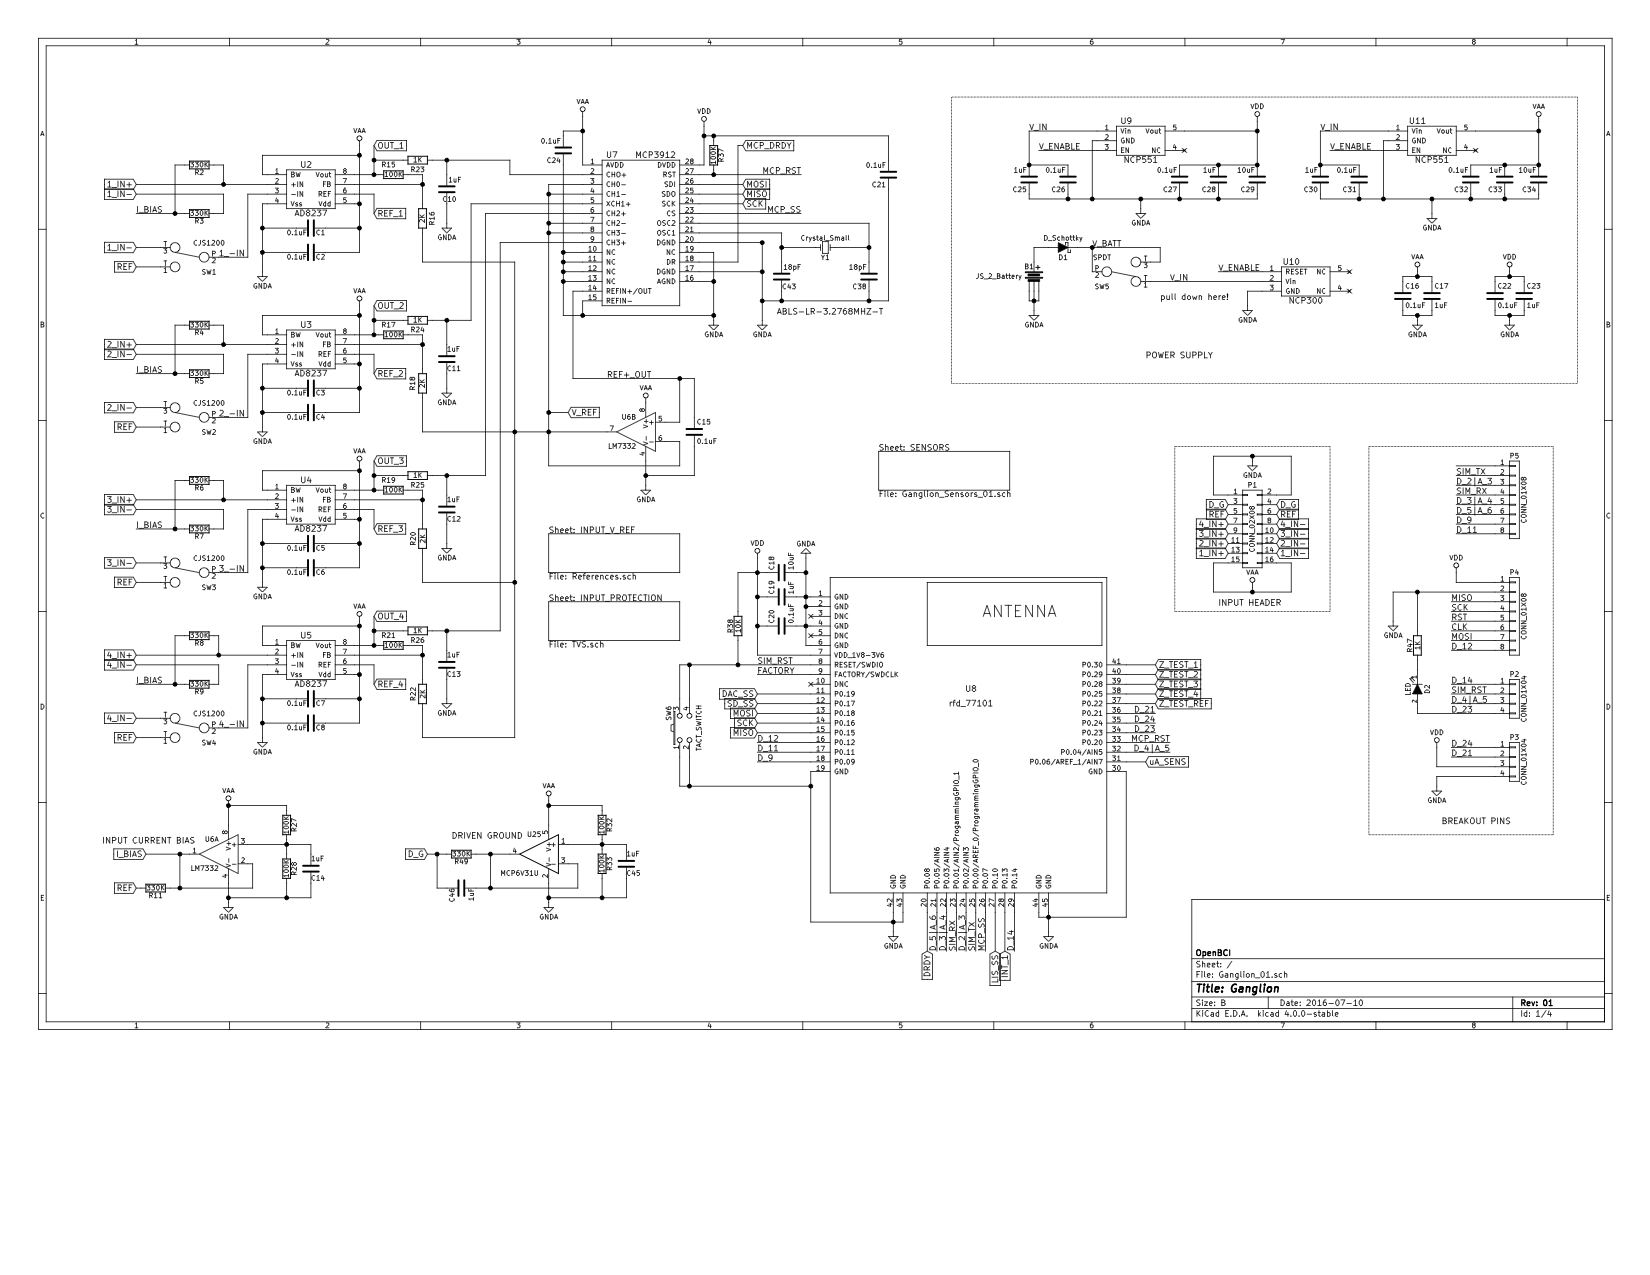 ganglion_schematic openbci ganglion openbci documentation bci bus wiring diagram at webbmarketing.co